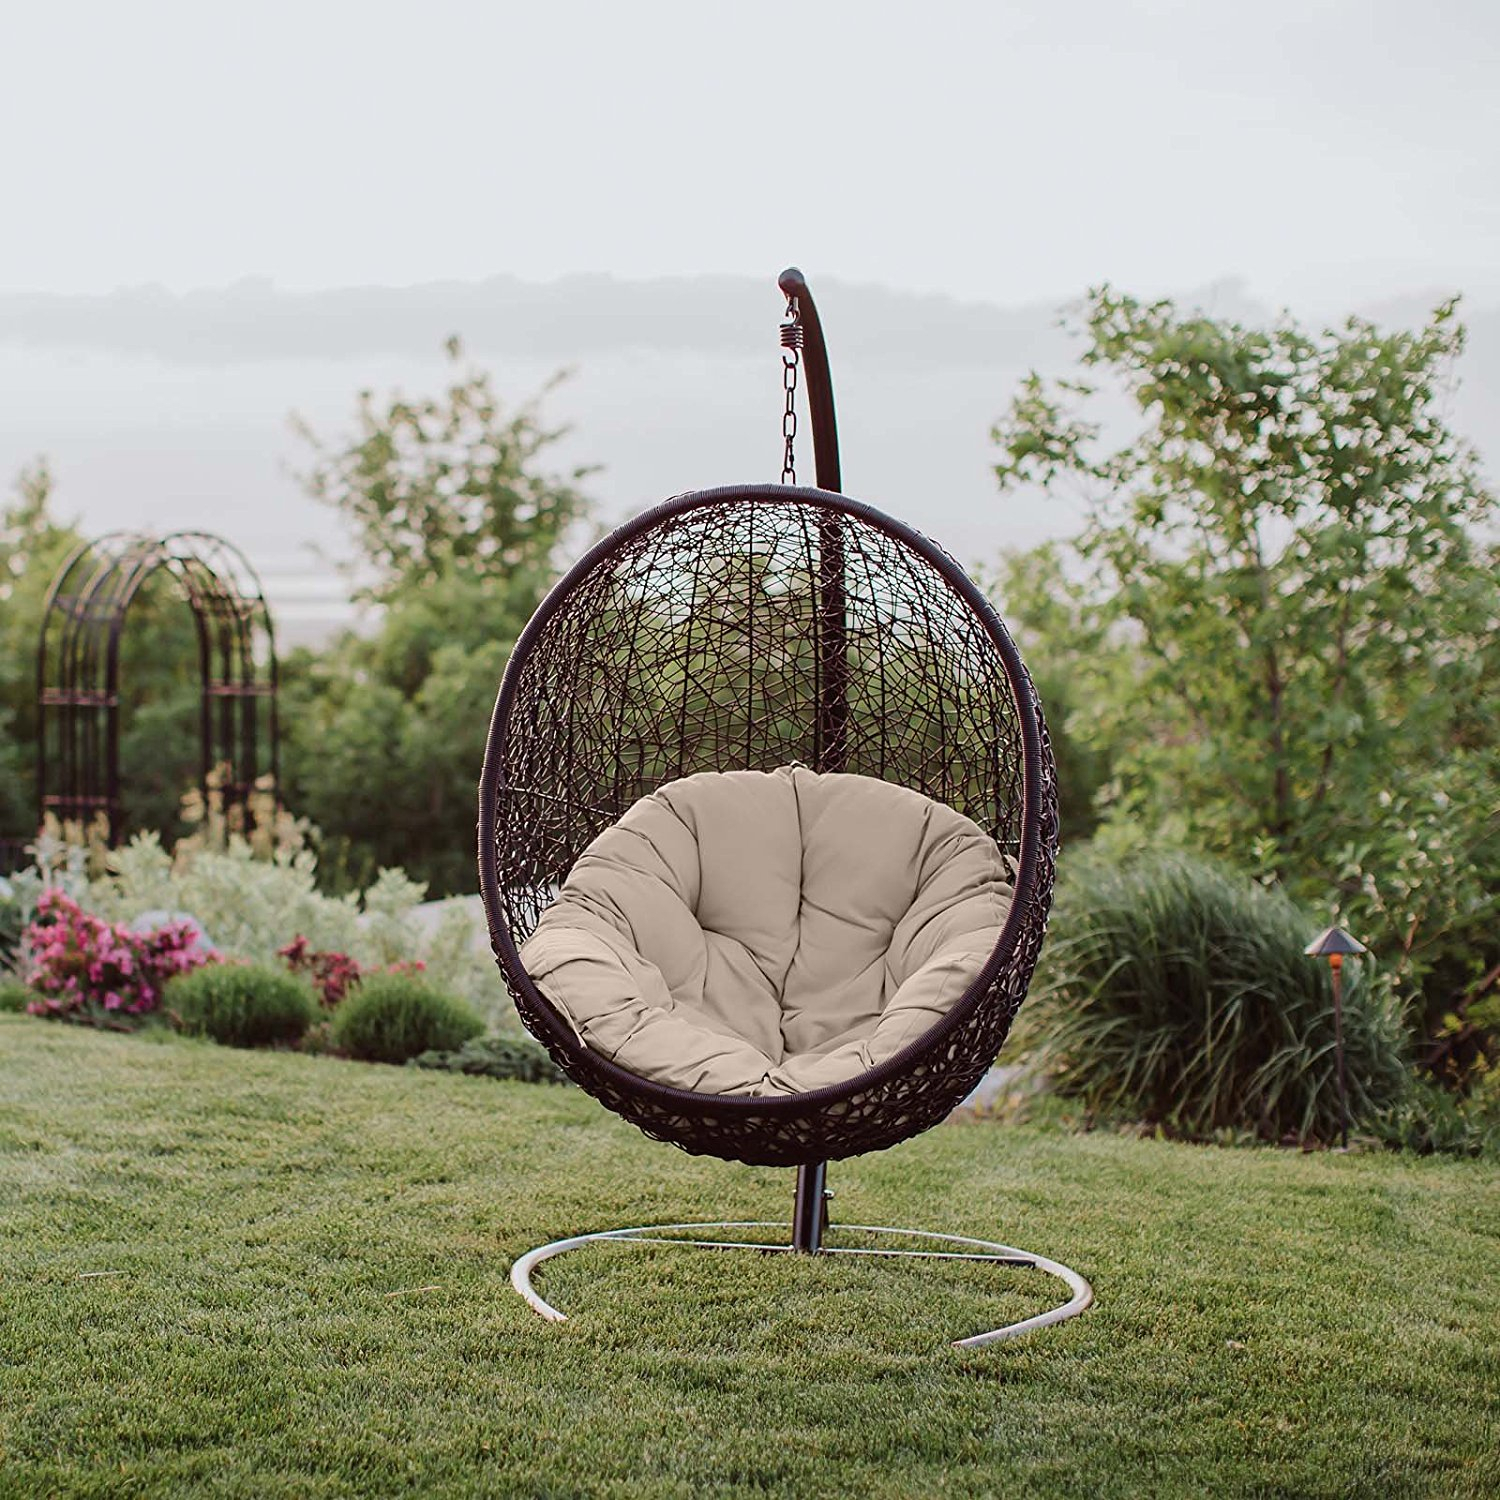 Cheap Swing Set Patio, Find Swing Set Patio Deals On Line At Regarding Outdoor Pvc Coated Polyester Porch Swings With Stand (View 17 of 25)